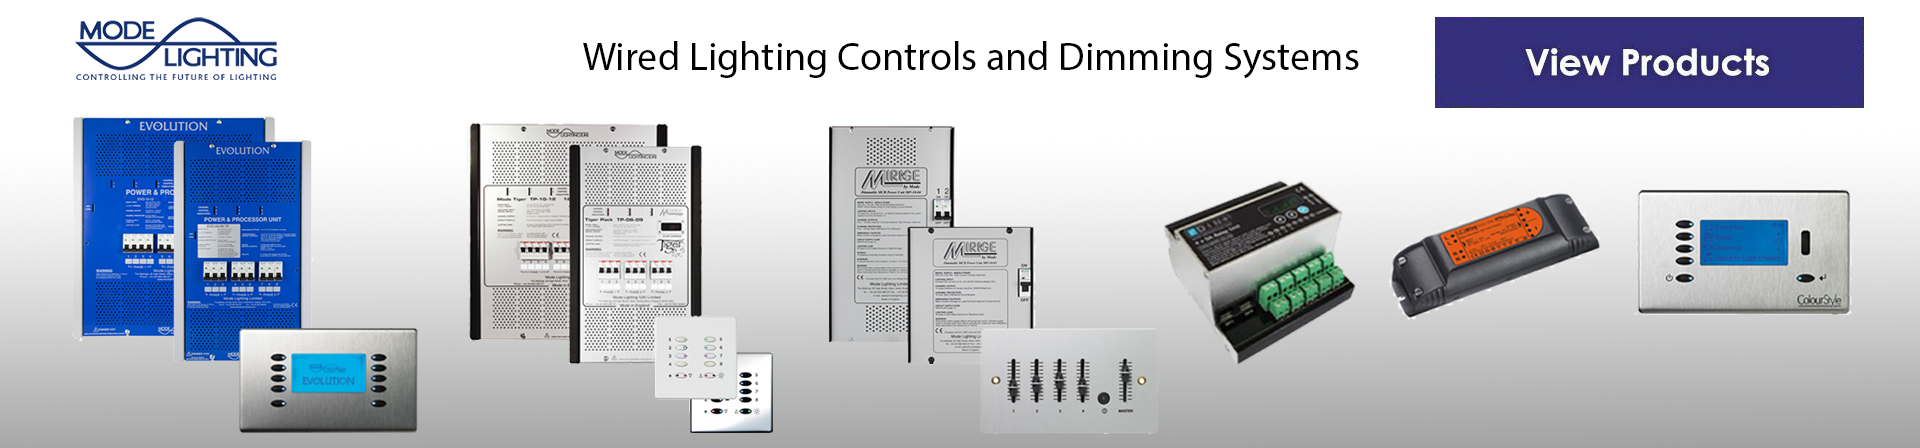 Mode Lighting Wired Lighting Systems